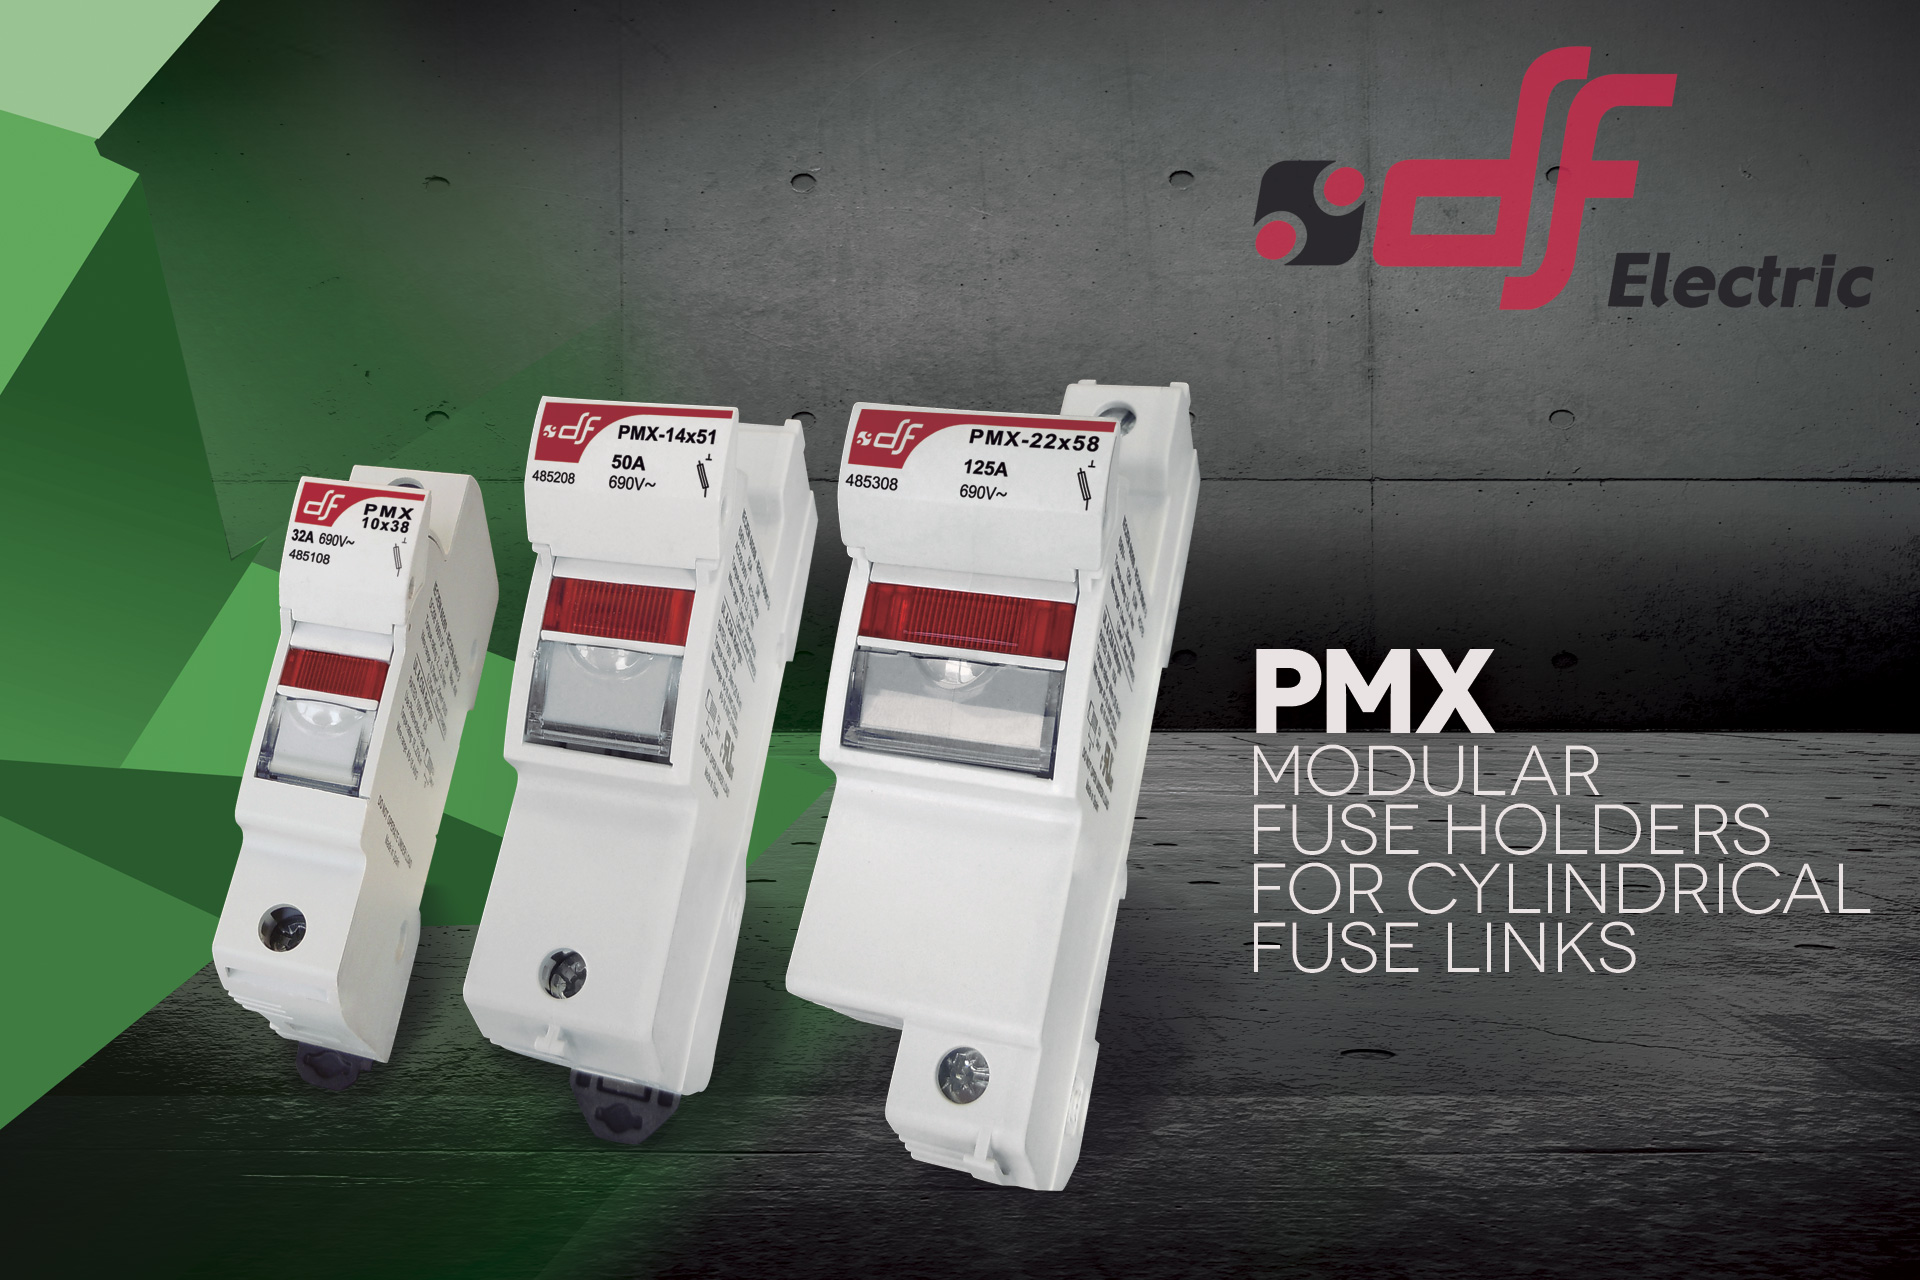 Pmx Industrial Modular Fuse Holders Df Electric Electrical Fuses Circuit Breakers Din Rail Mounted